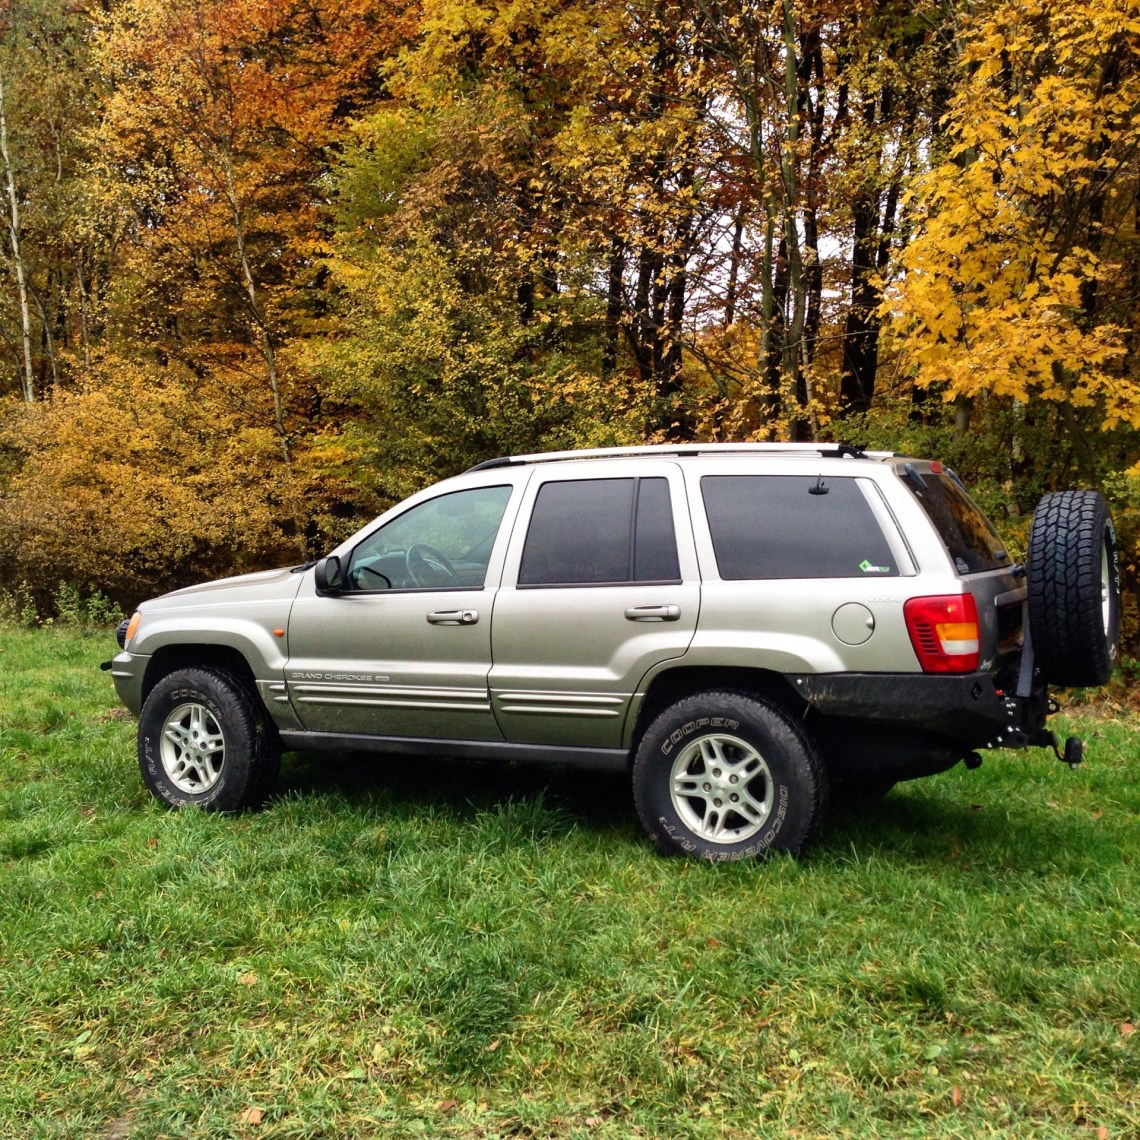 Jeep and autumn leafs